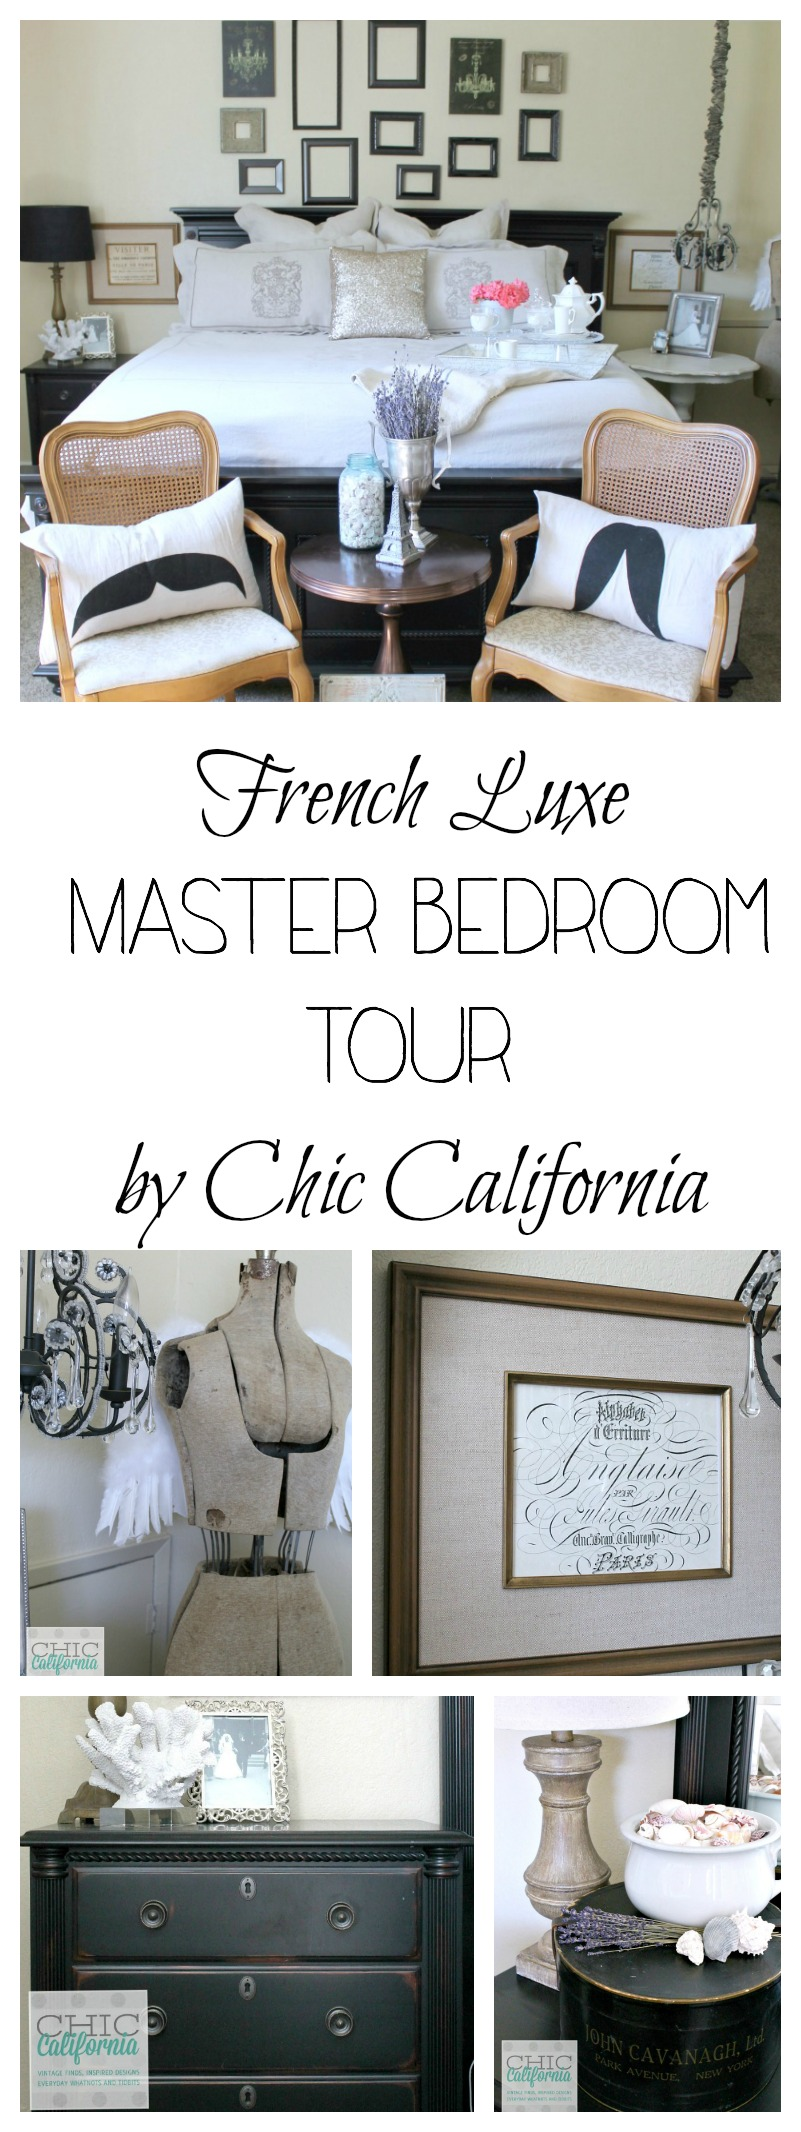 French Luxe Master Bedroom Tour by Chic California